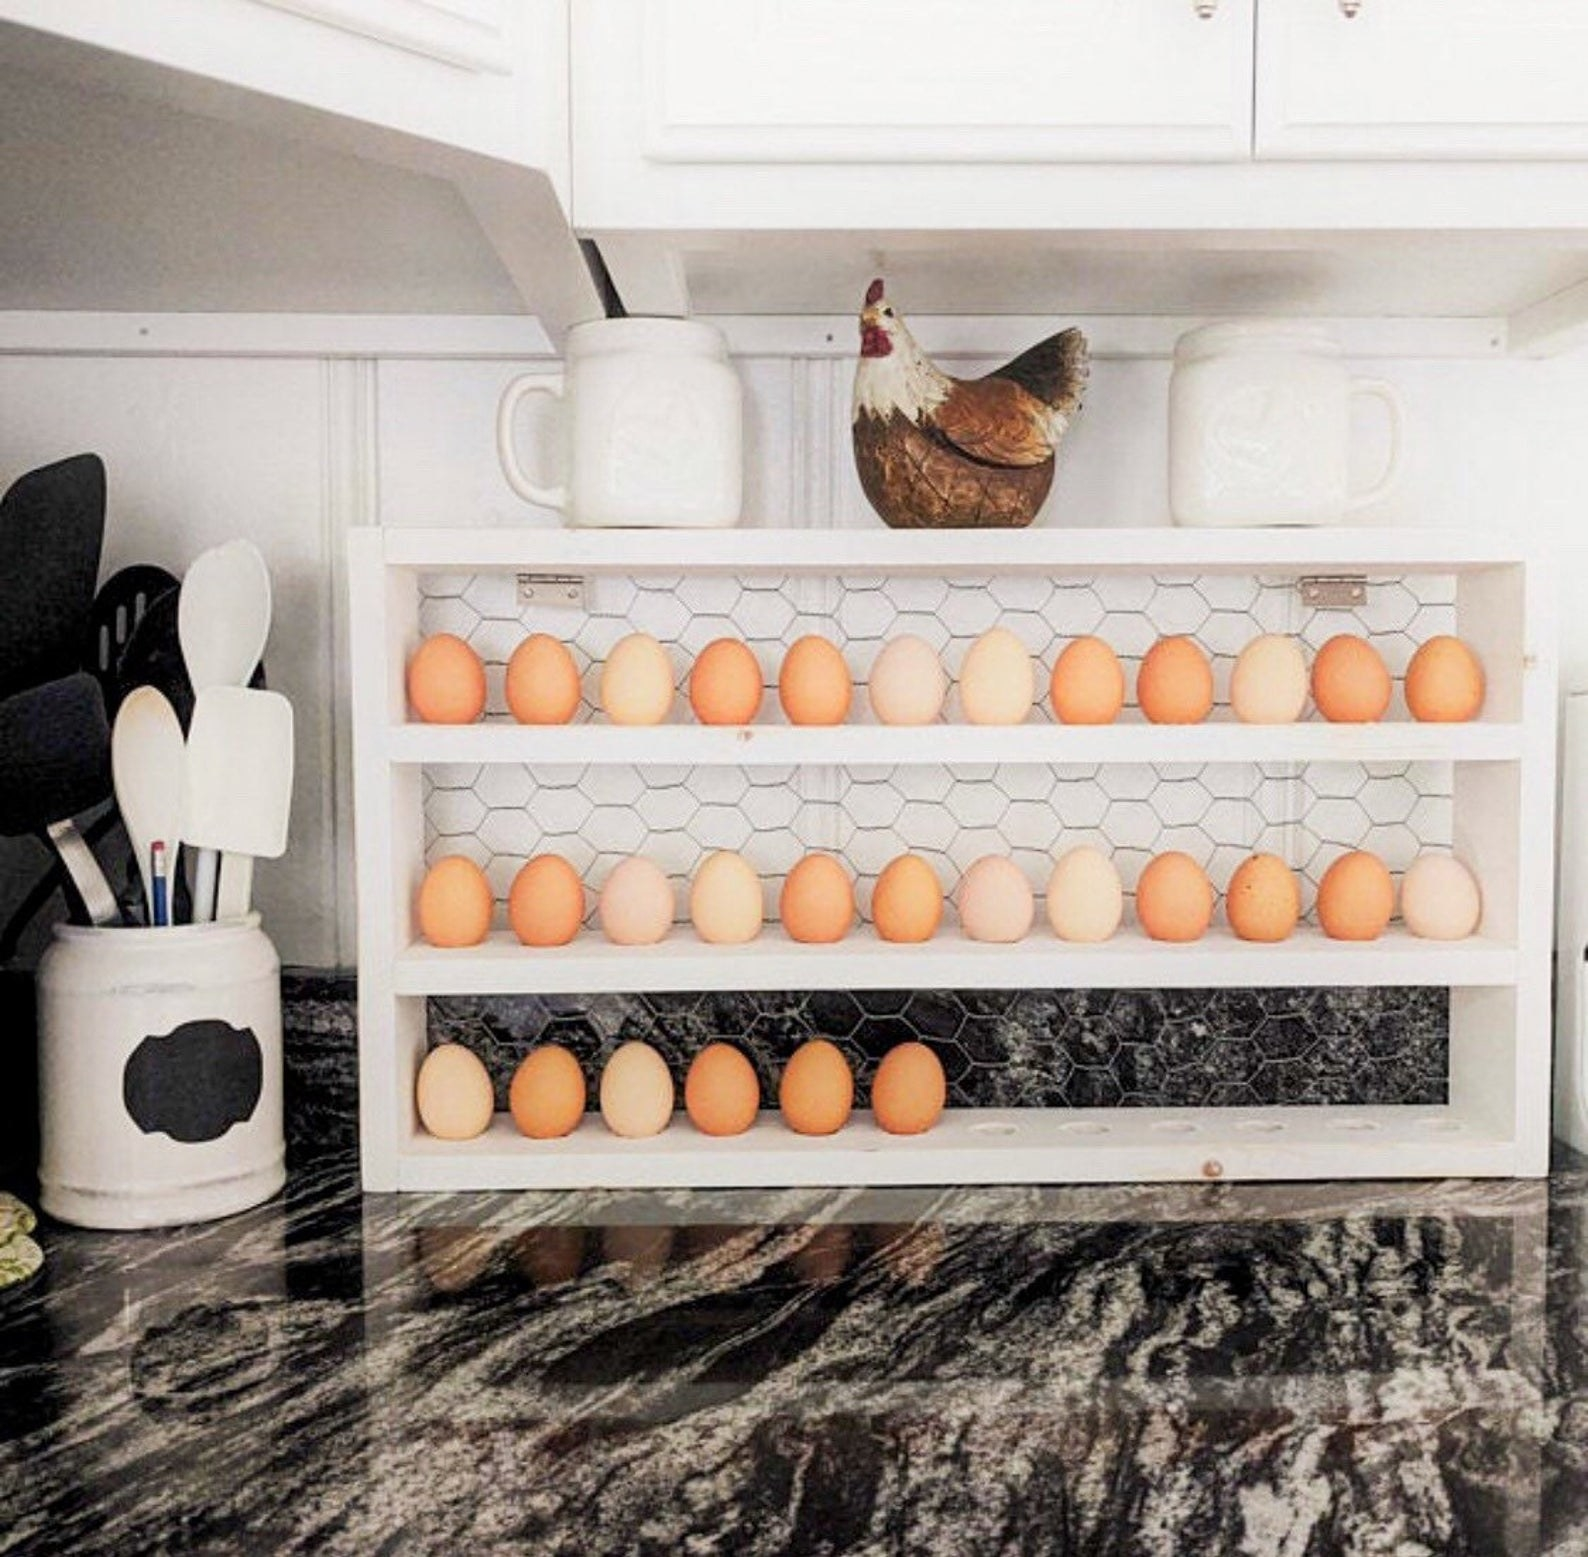 The white egg rack with eggs in it sitting on a counter